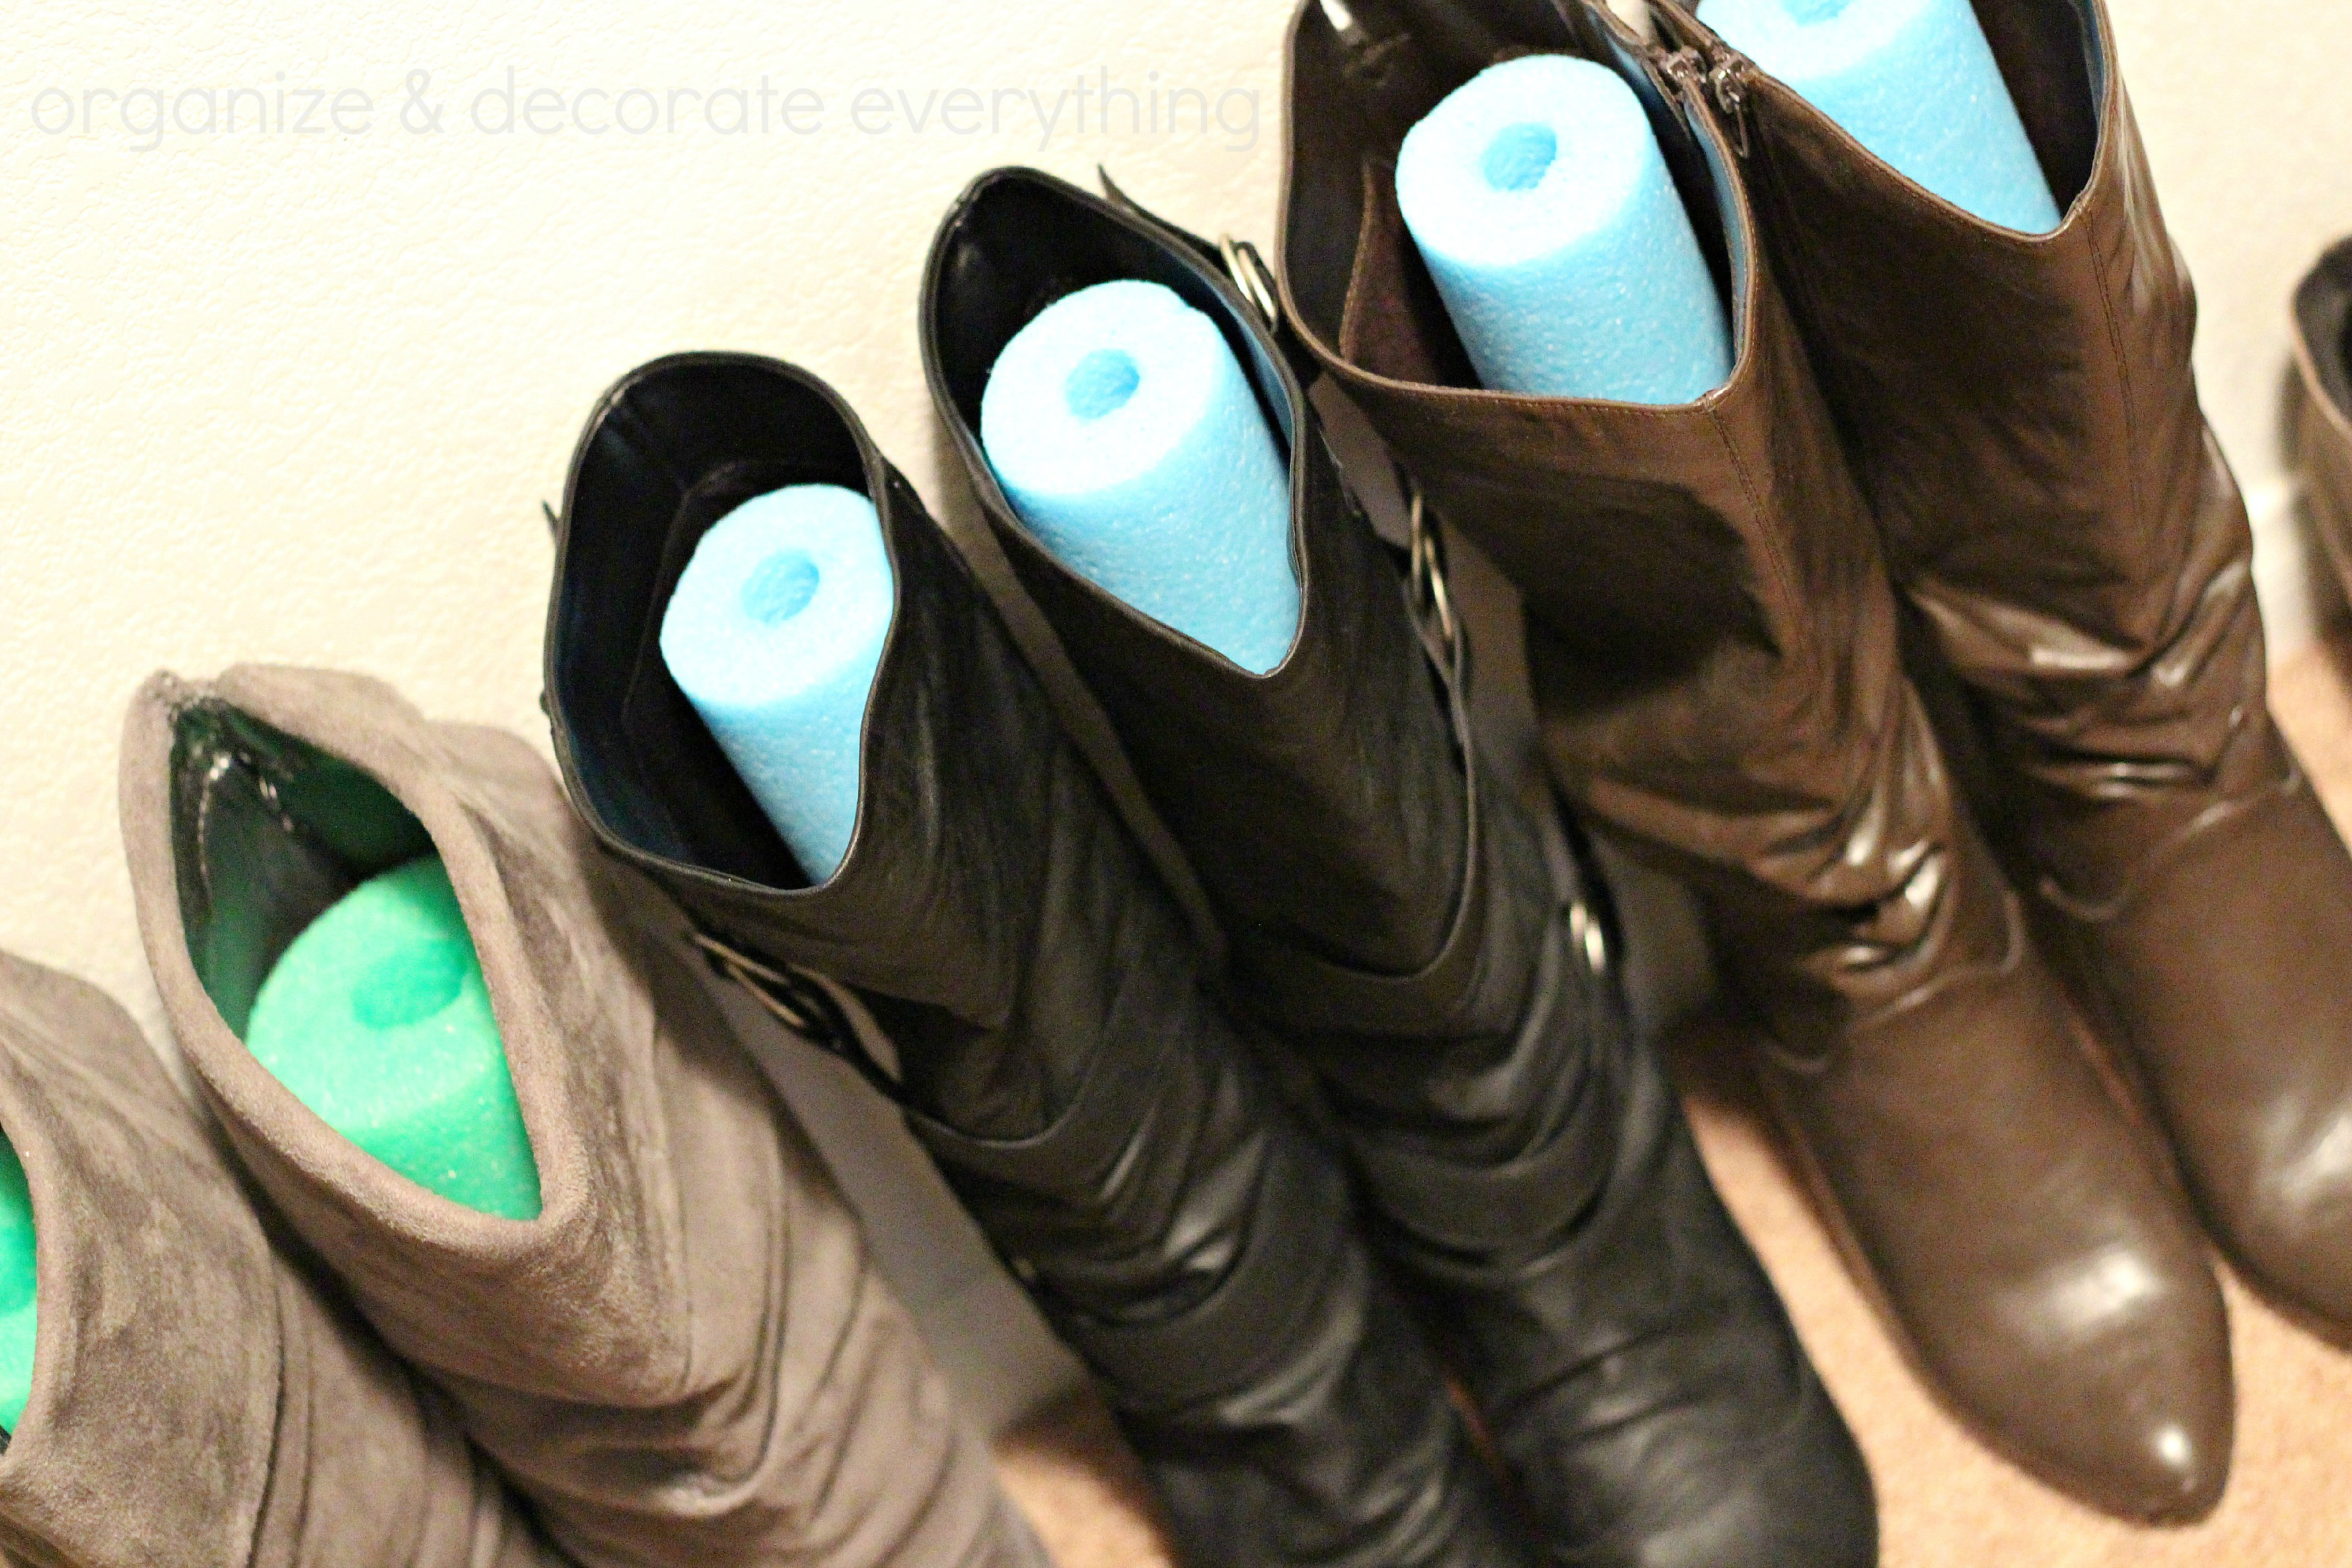 Diy boot shapers organize and decorate everything boot shapers 31 solutioingenieria Images